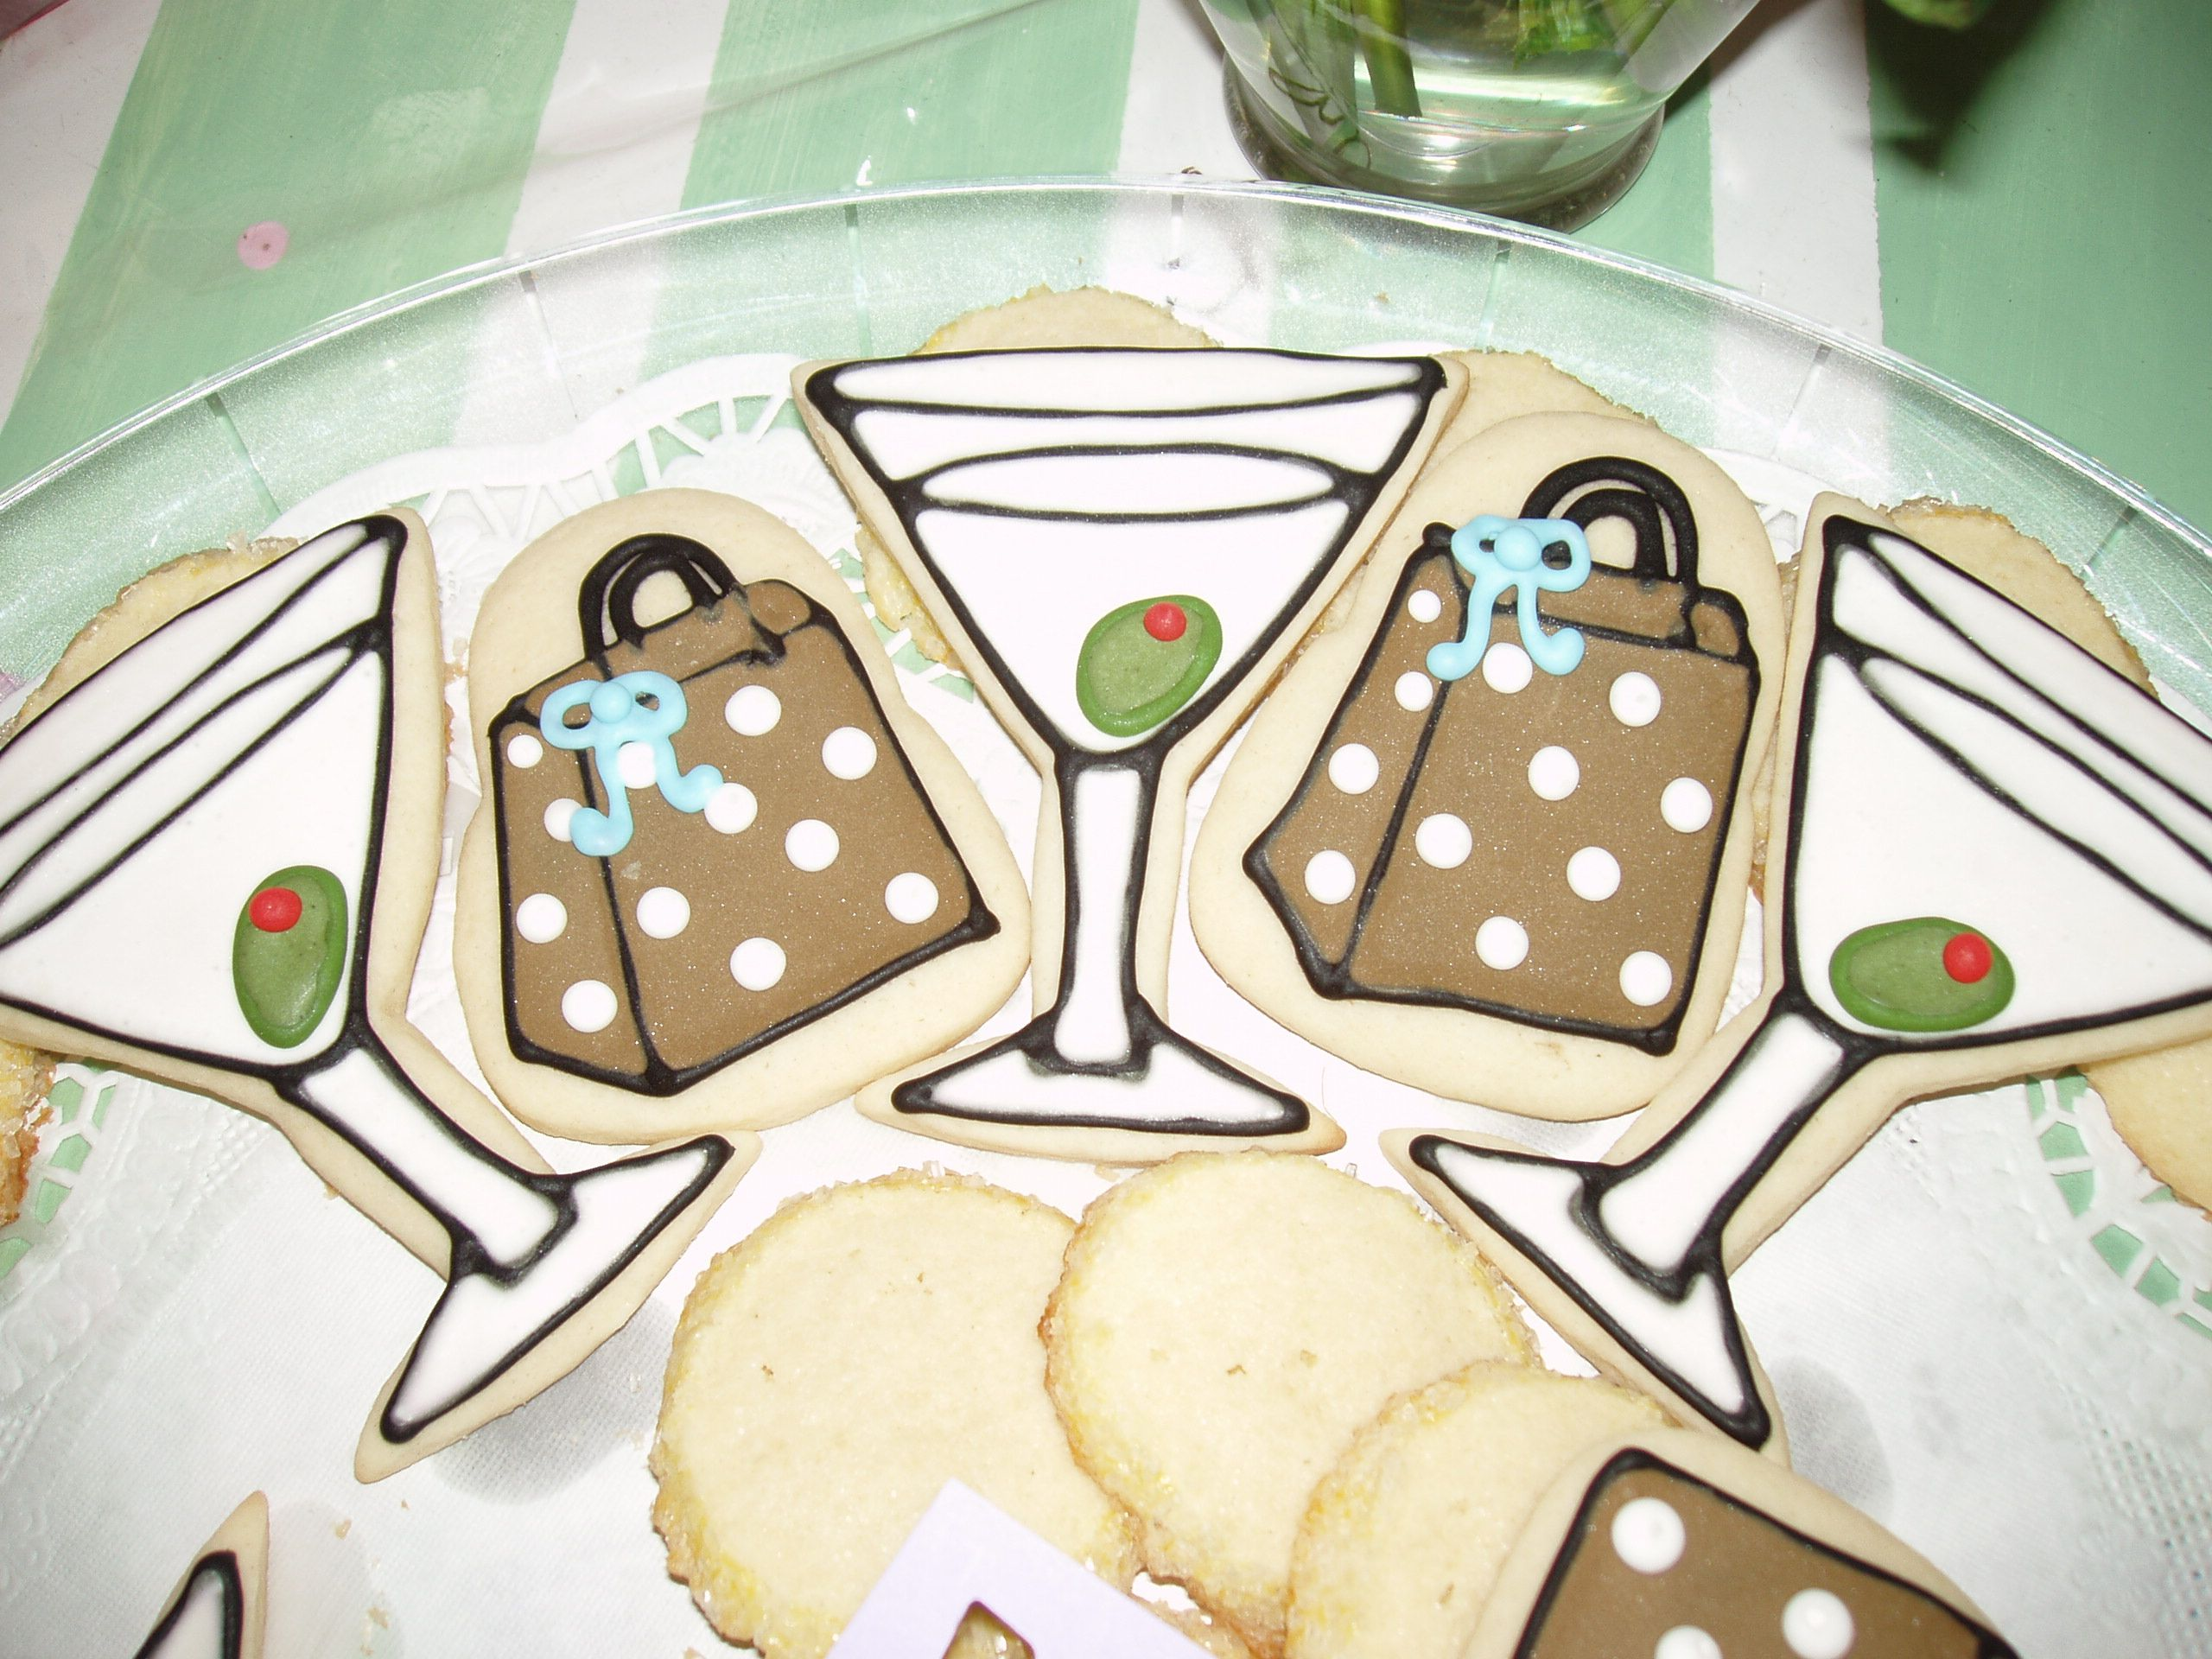 Sip & Shop for Cystic Fibrosis cookies